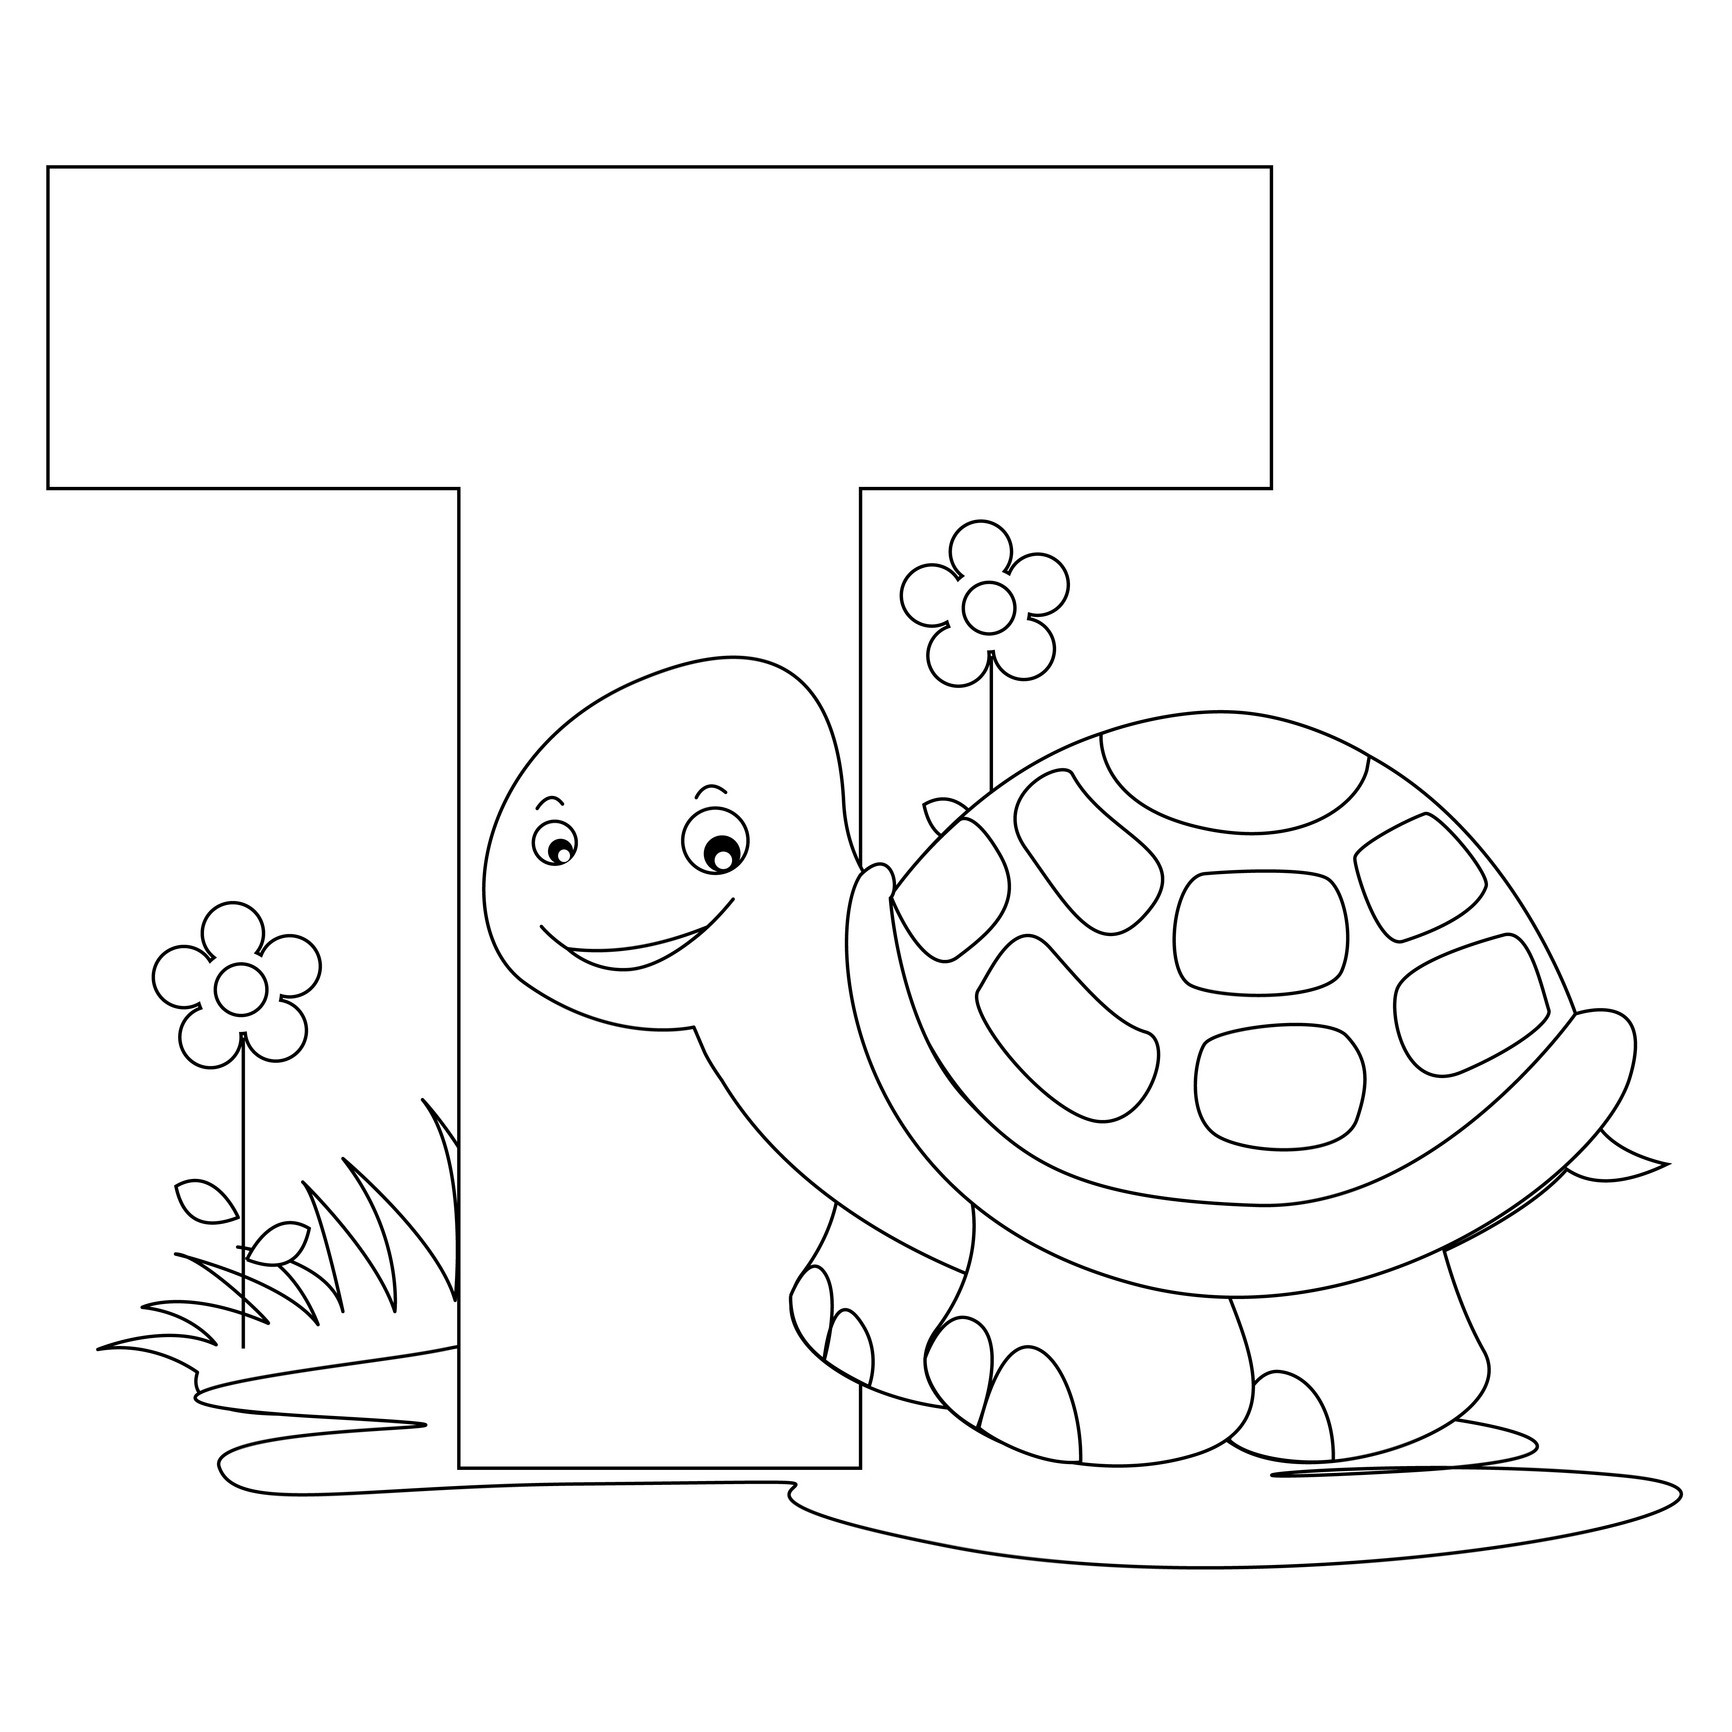 Abc Coloring Pages Pdf : Free printable alphabet coloring pages for kids best